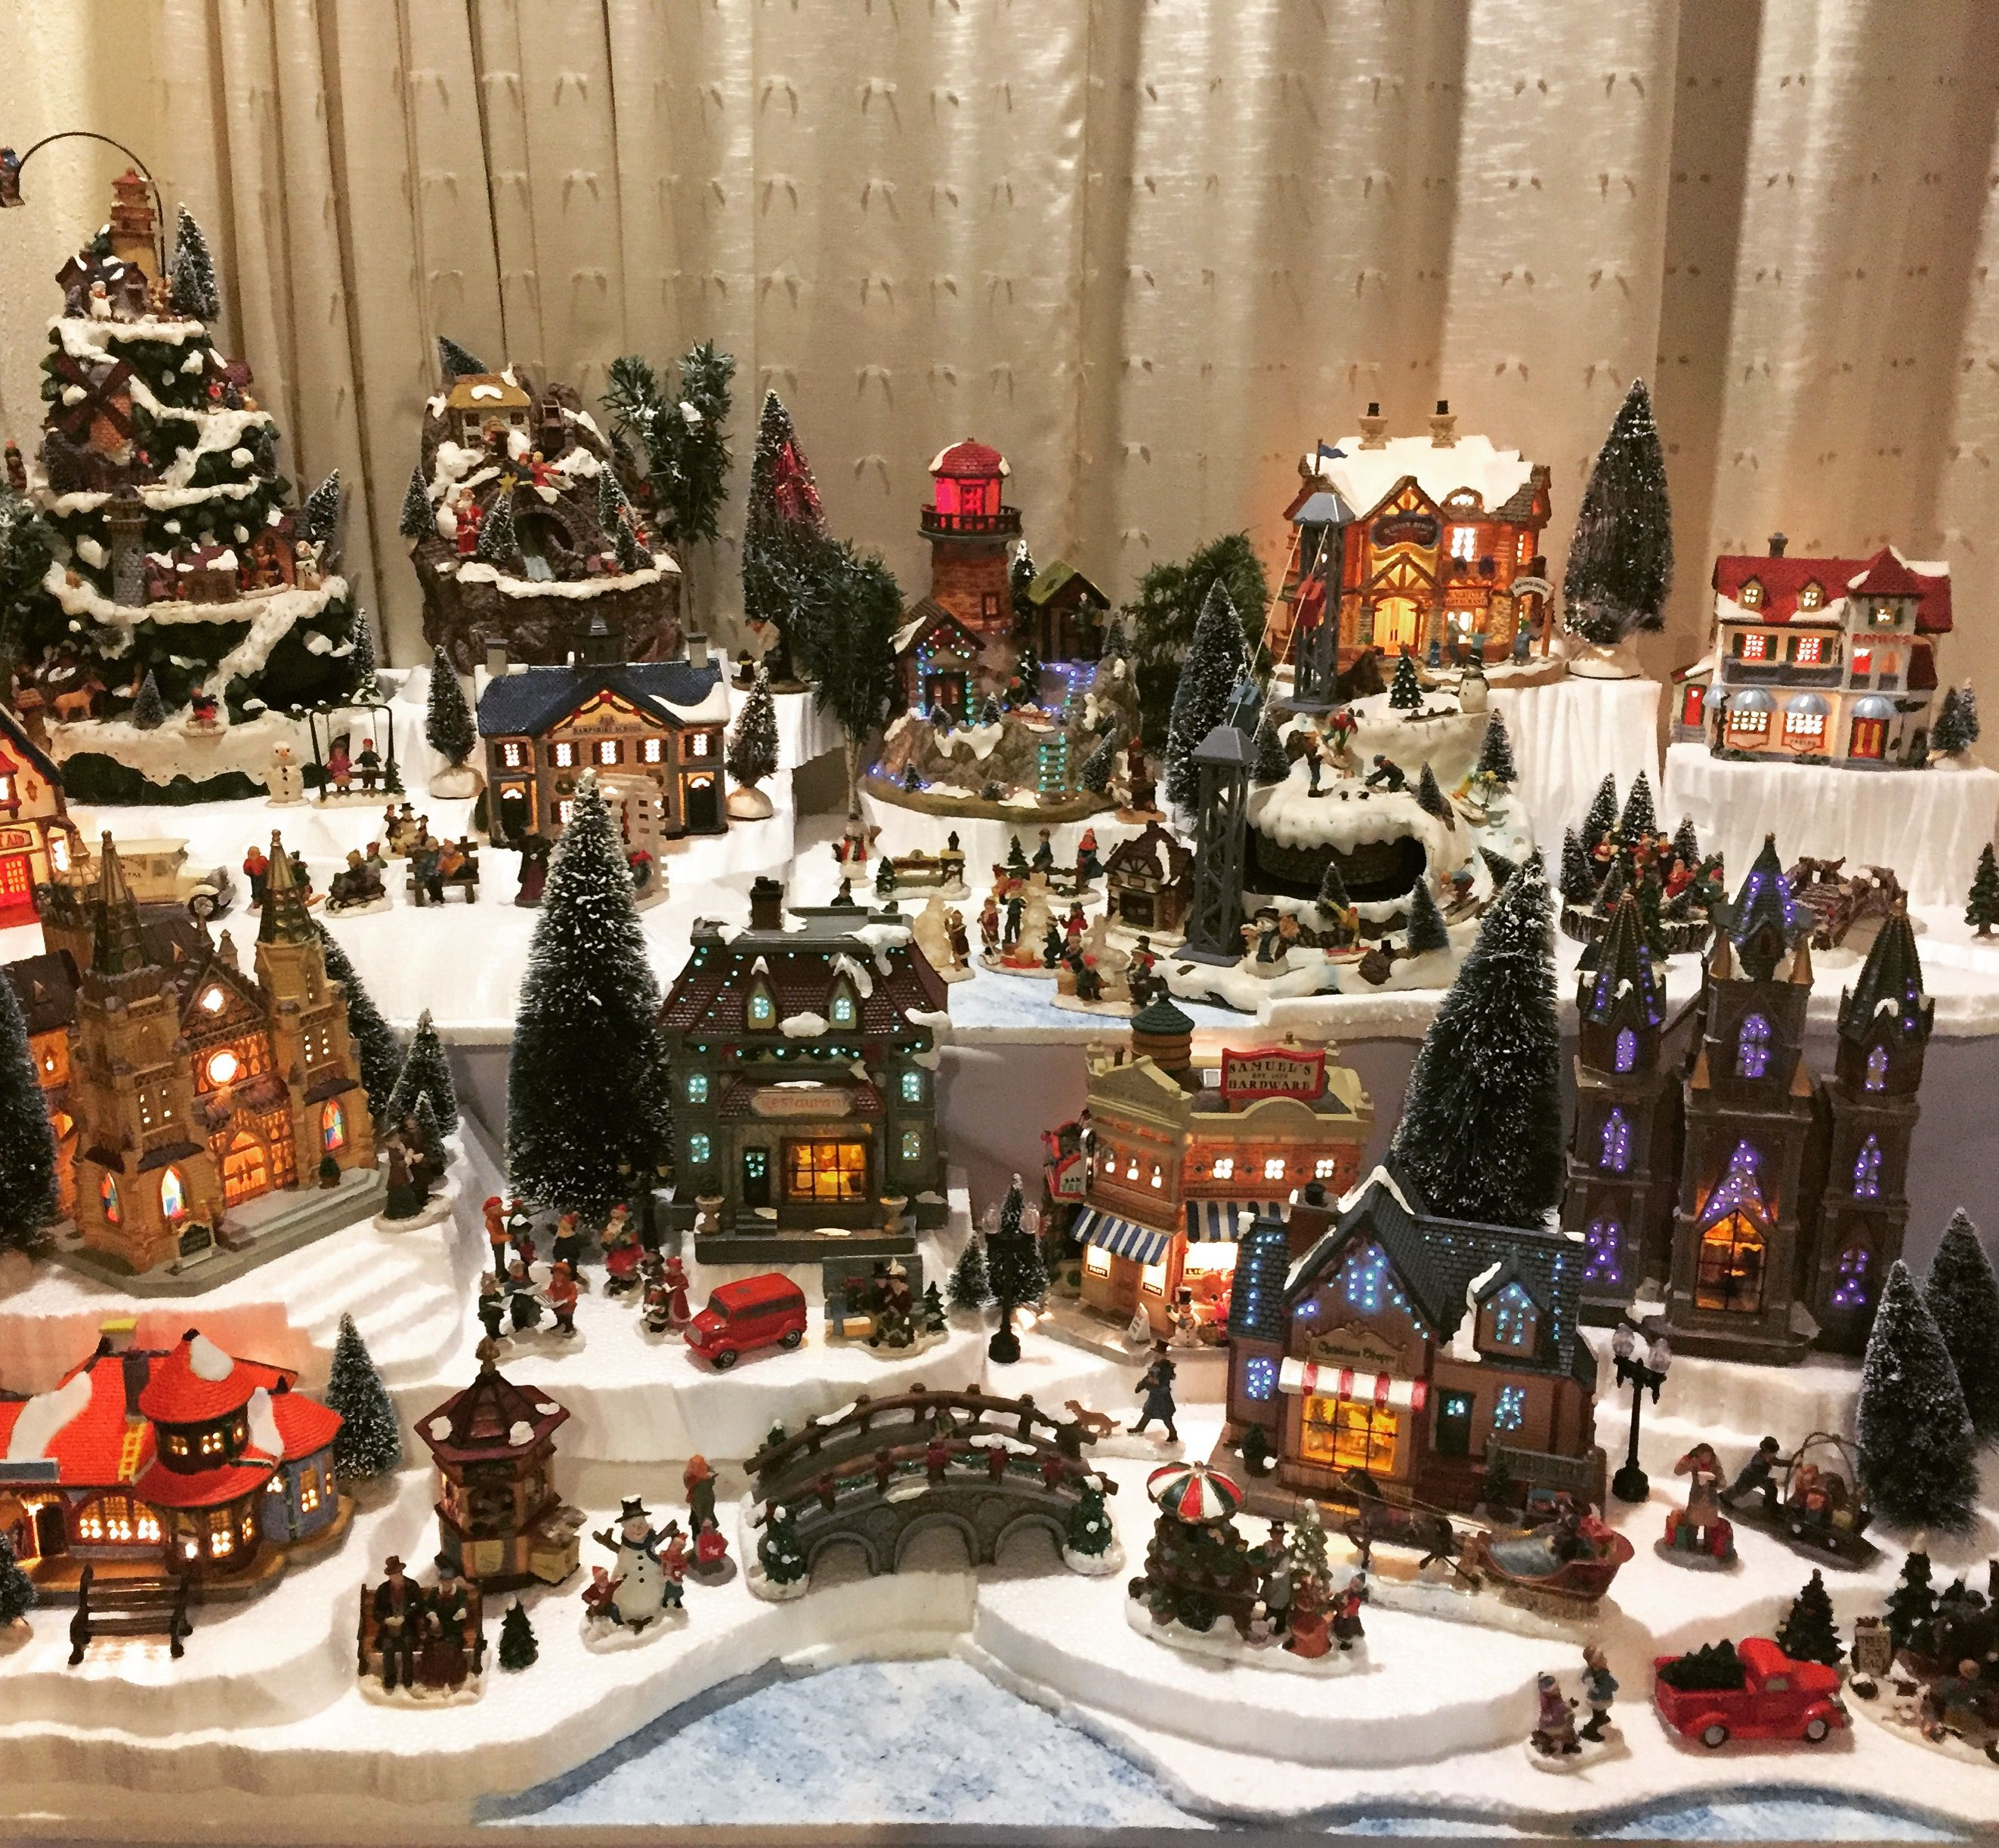 Most Popular Christmas Decorations On Pinterest To Pin: 2016 Christmas Village Display Just About Done. Enjoyed